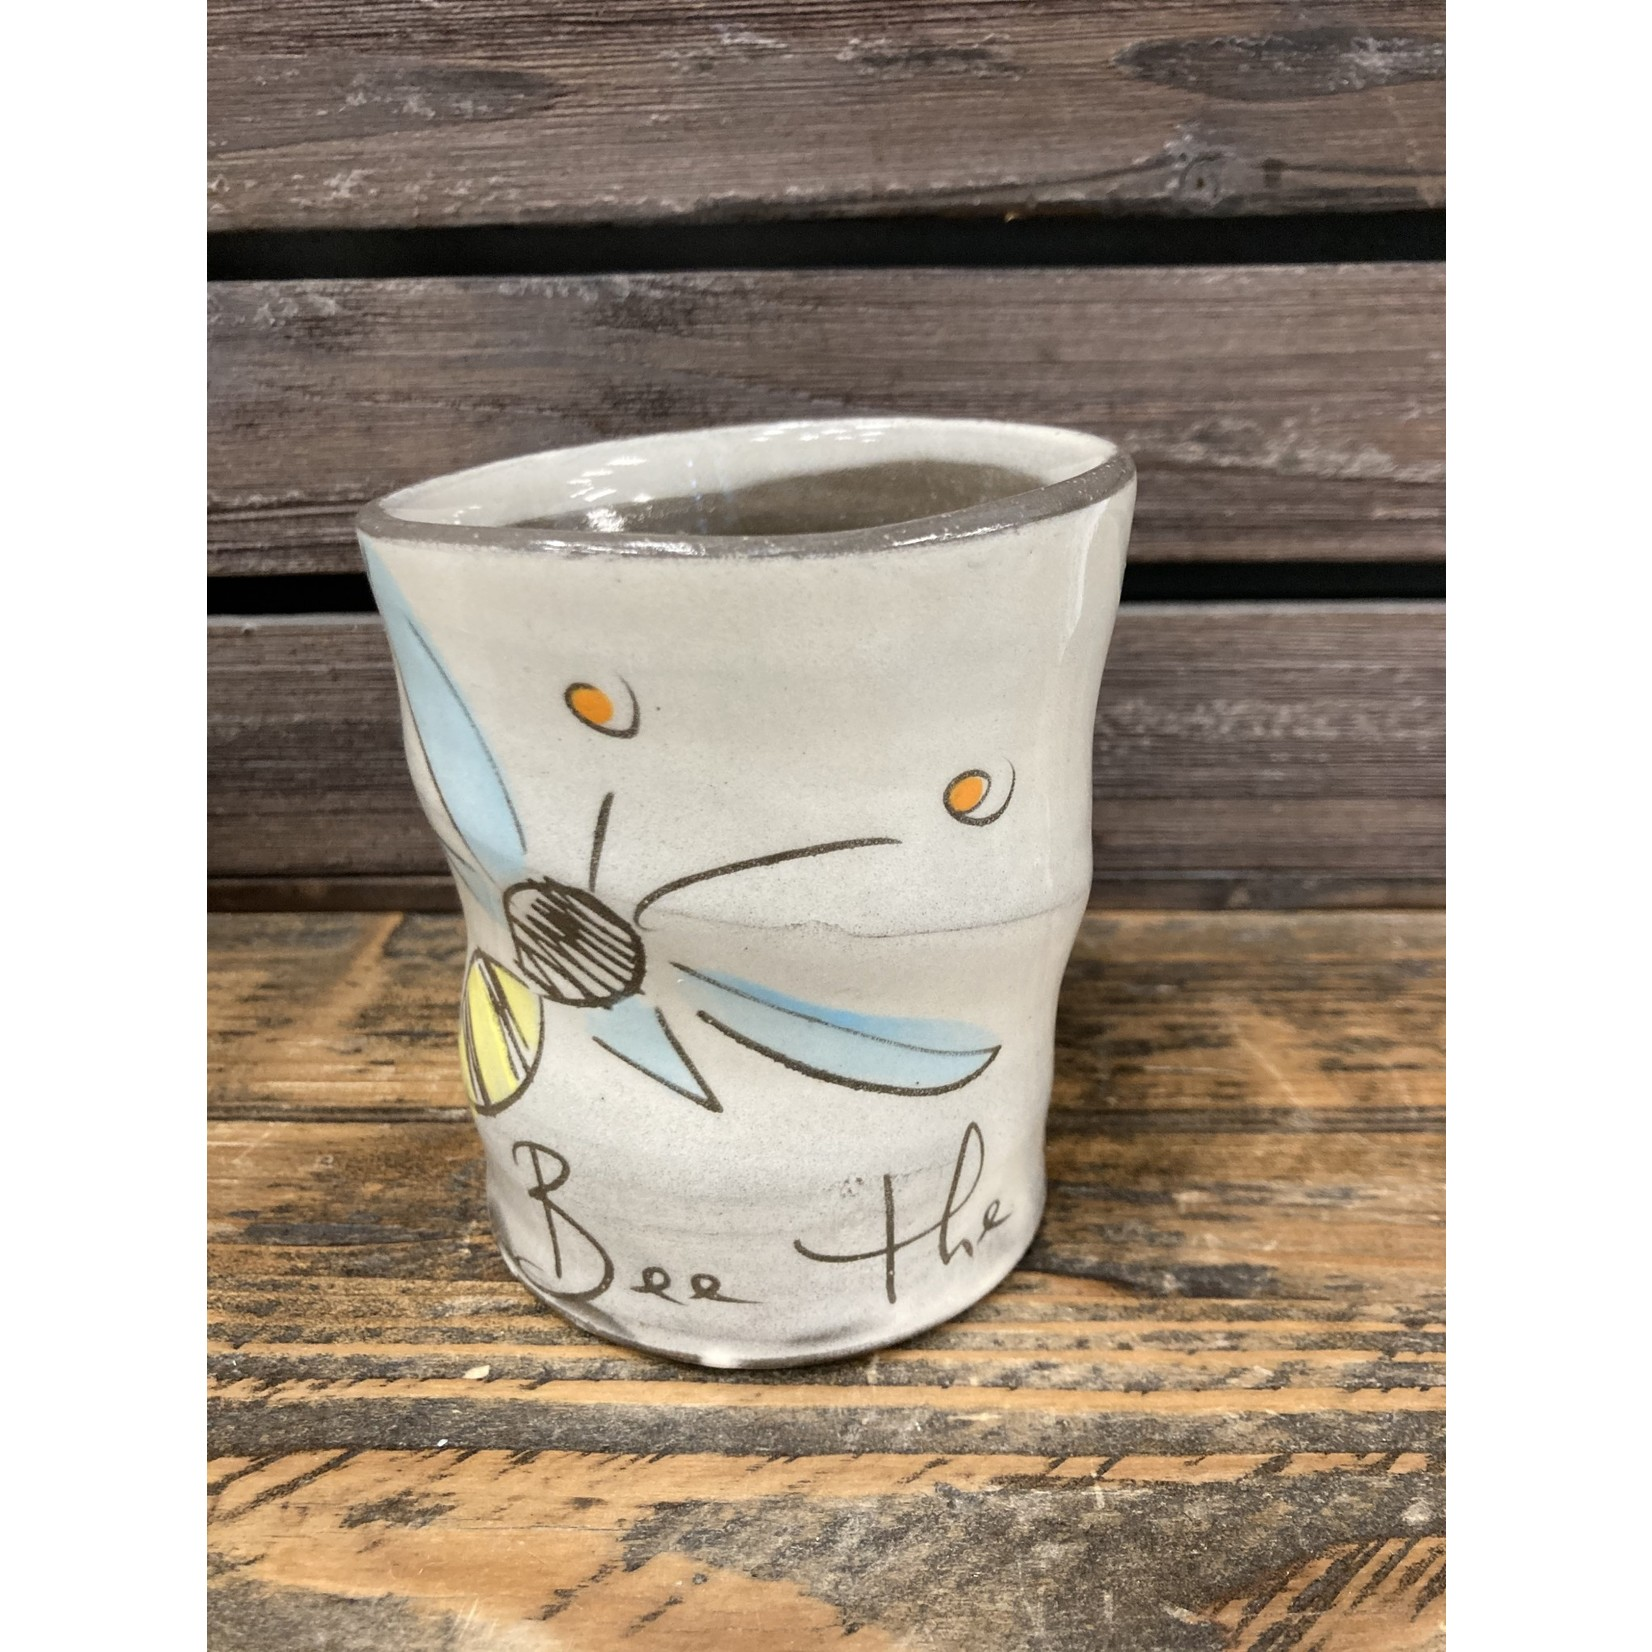 Z Pots   Ceramic ( Bee the change ) cup